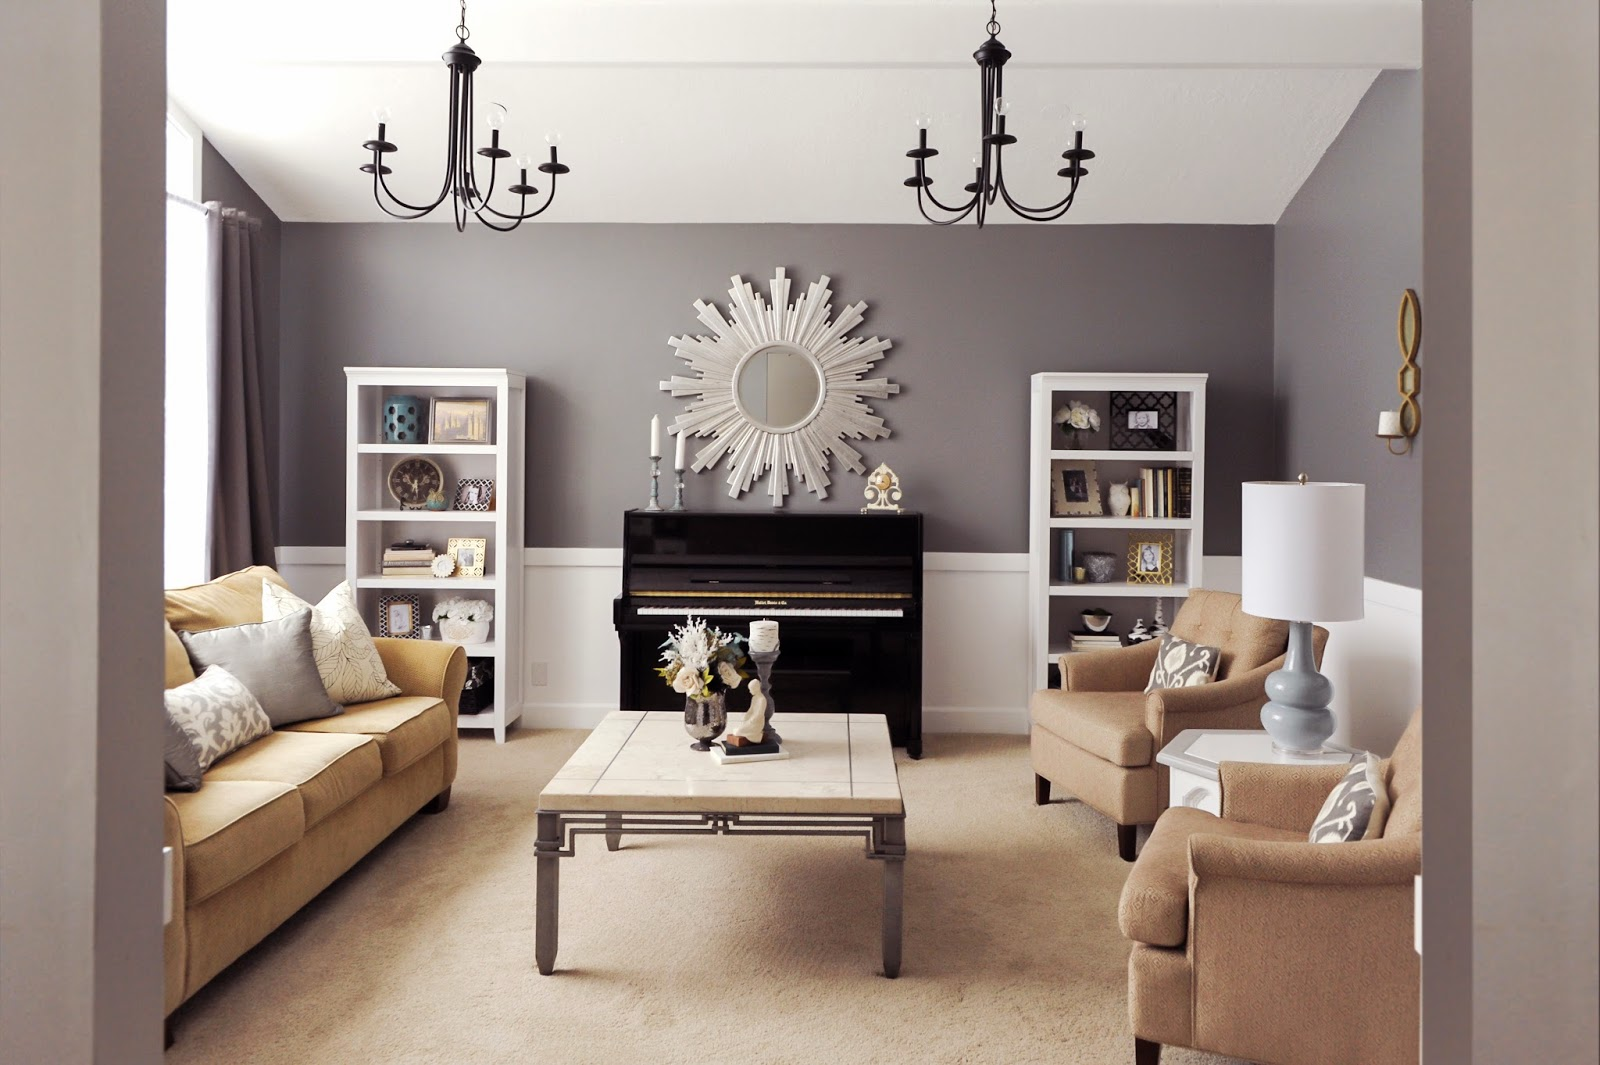 Studio 7 Interior Design: Client Reveal:Transitional Chic Formal ...